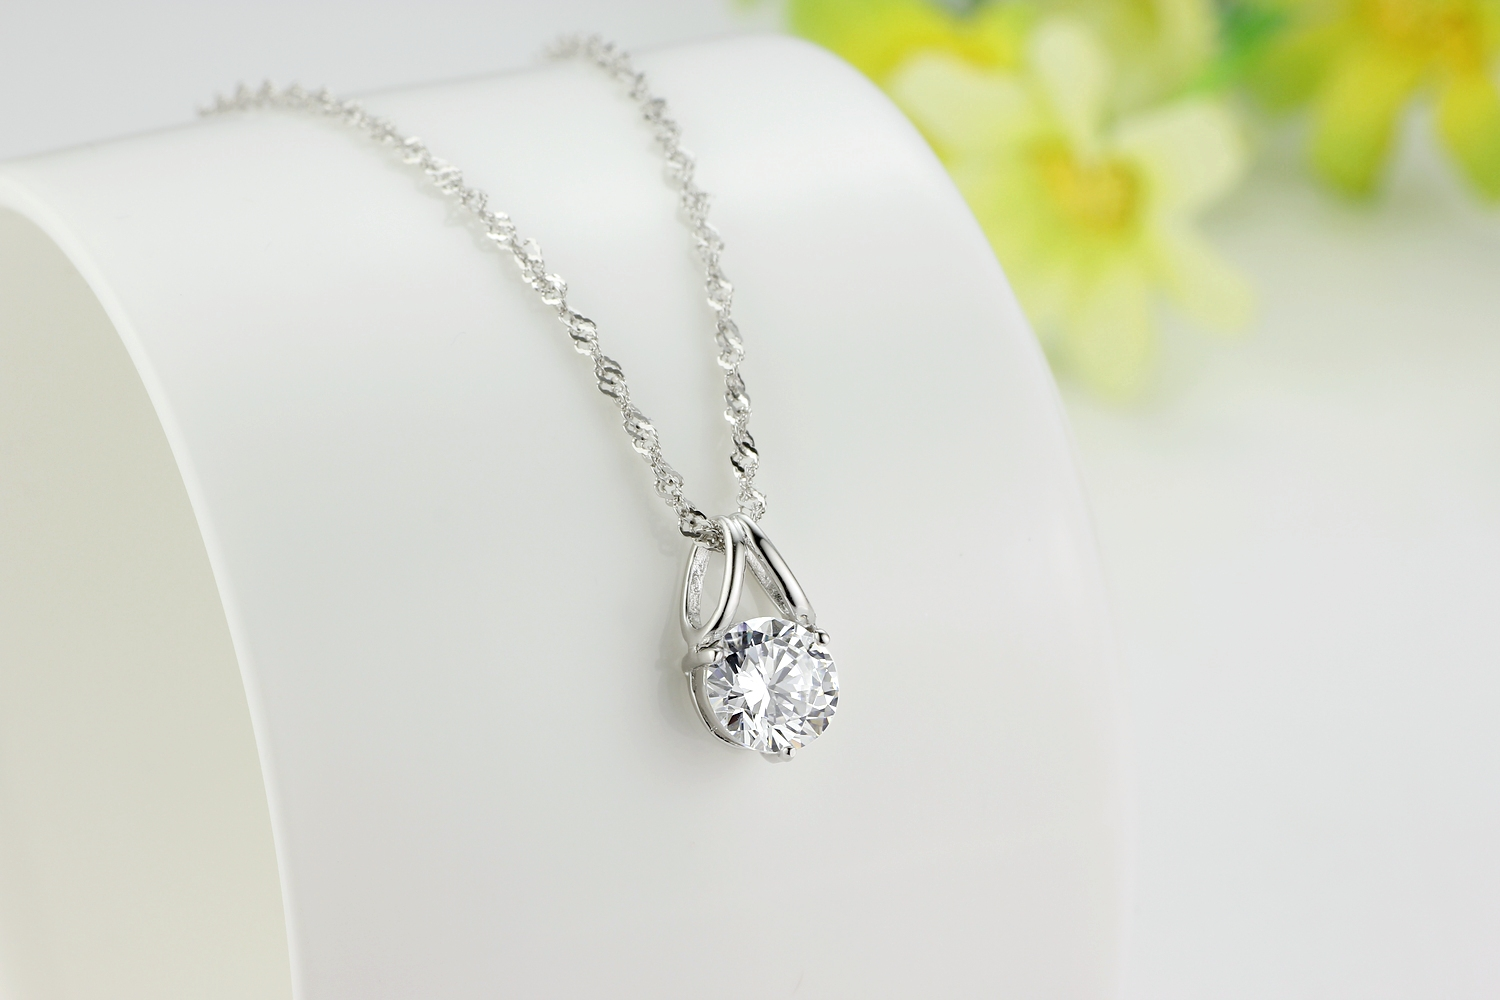 Genuine 925 sterling pendant necklace paved two circles cubic genuine 925 sterling pendant necklace paved two circles cubic zirconia stone and 18 inch silver chain mozeypictures Image collections